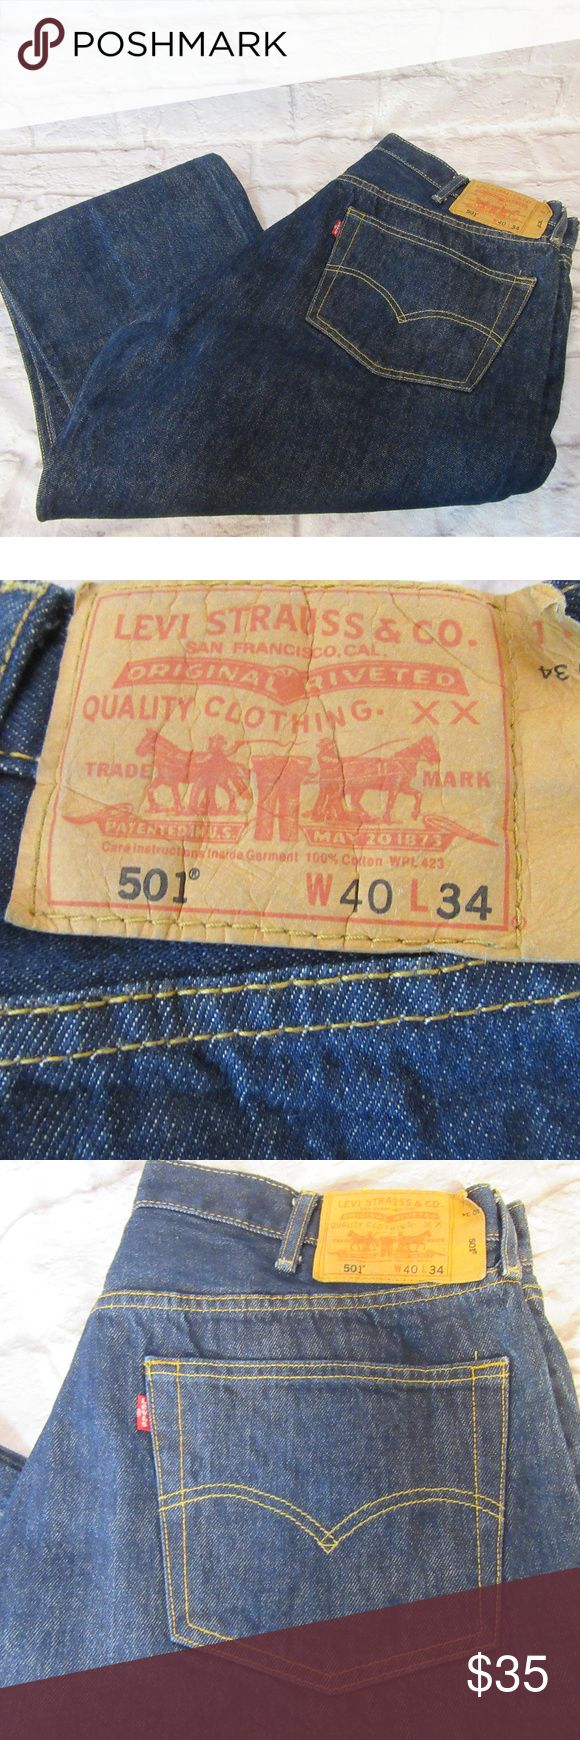 """Levi's 501 W40 L34 Button Fly Jeans M57 EUC Please double-check measurements below for a proper fit.    THE FIT Size - W40 L34 WAIST - Laying Flat - About - 18.50"""" INSEAM - Laying Flat - About - 32.50"""" RISE - Laying Flat - About - 13"""" HIPS - Laying Flat - About - 22"""" LEG OPENING - Laying Flat - About - 9""""  THE DETAILS 5 Pocket Button Fly Medium Wash 100% Cotton    PLEASE FOLLOW MY CLOSET FOR GREAT NEW DEALS EVERYDAY! THANK YOU FOR YOUR BUSINESS! Levi's Jeans Straight"""